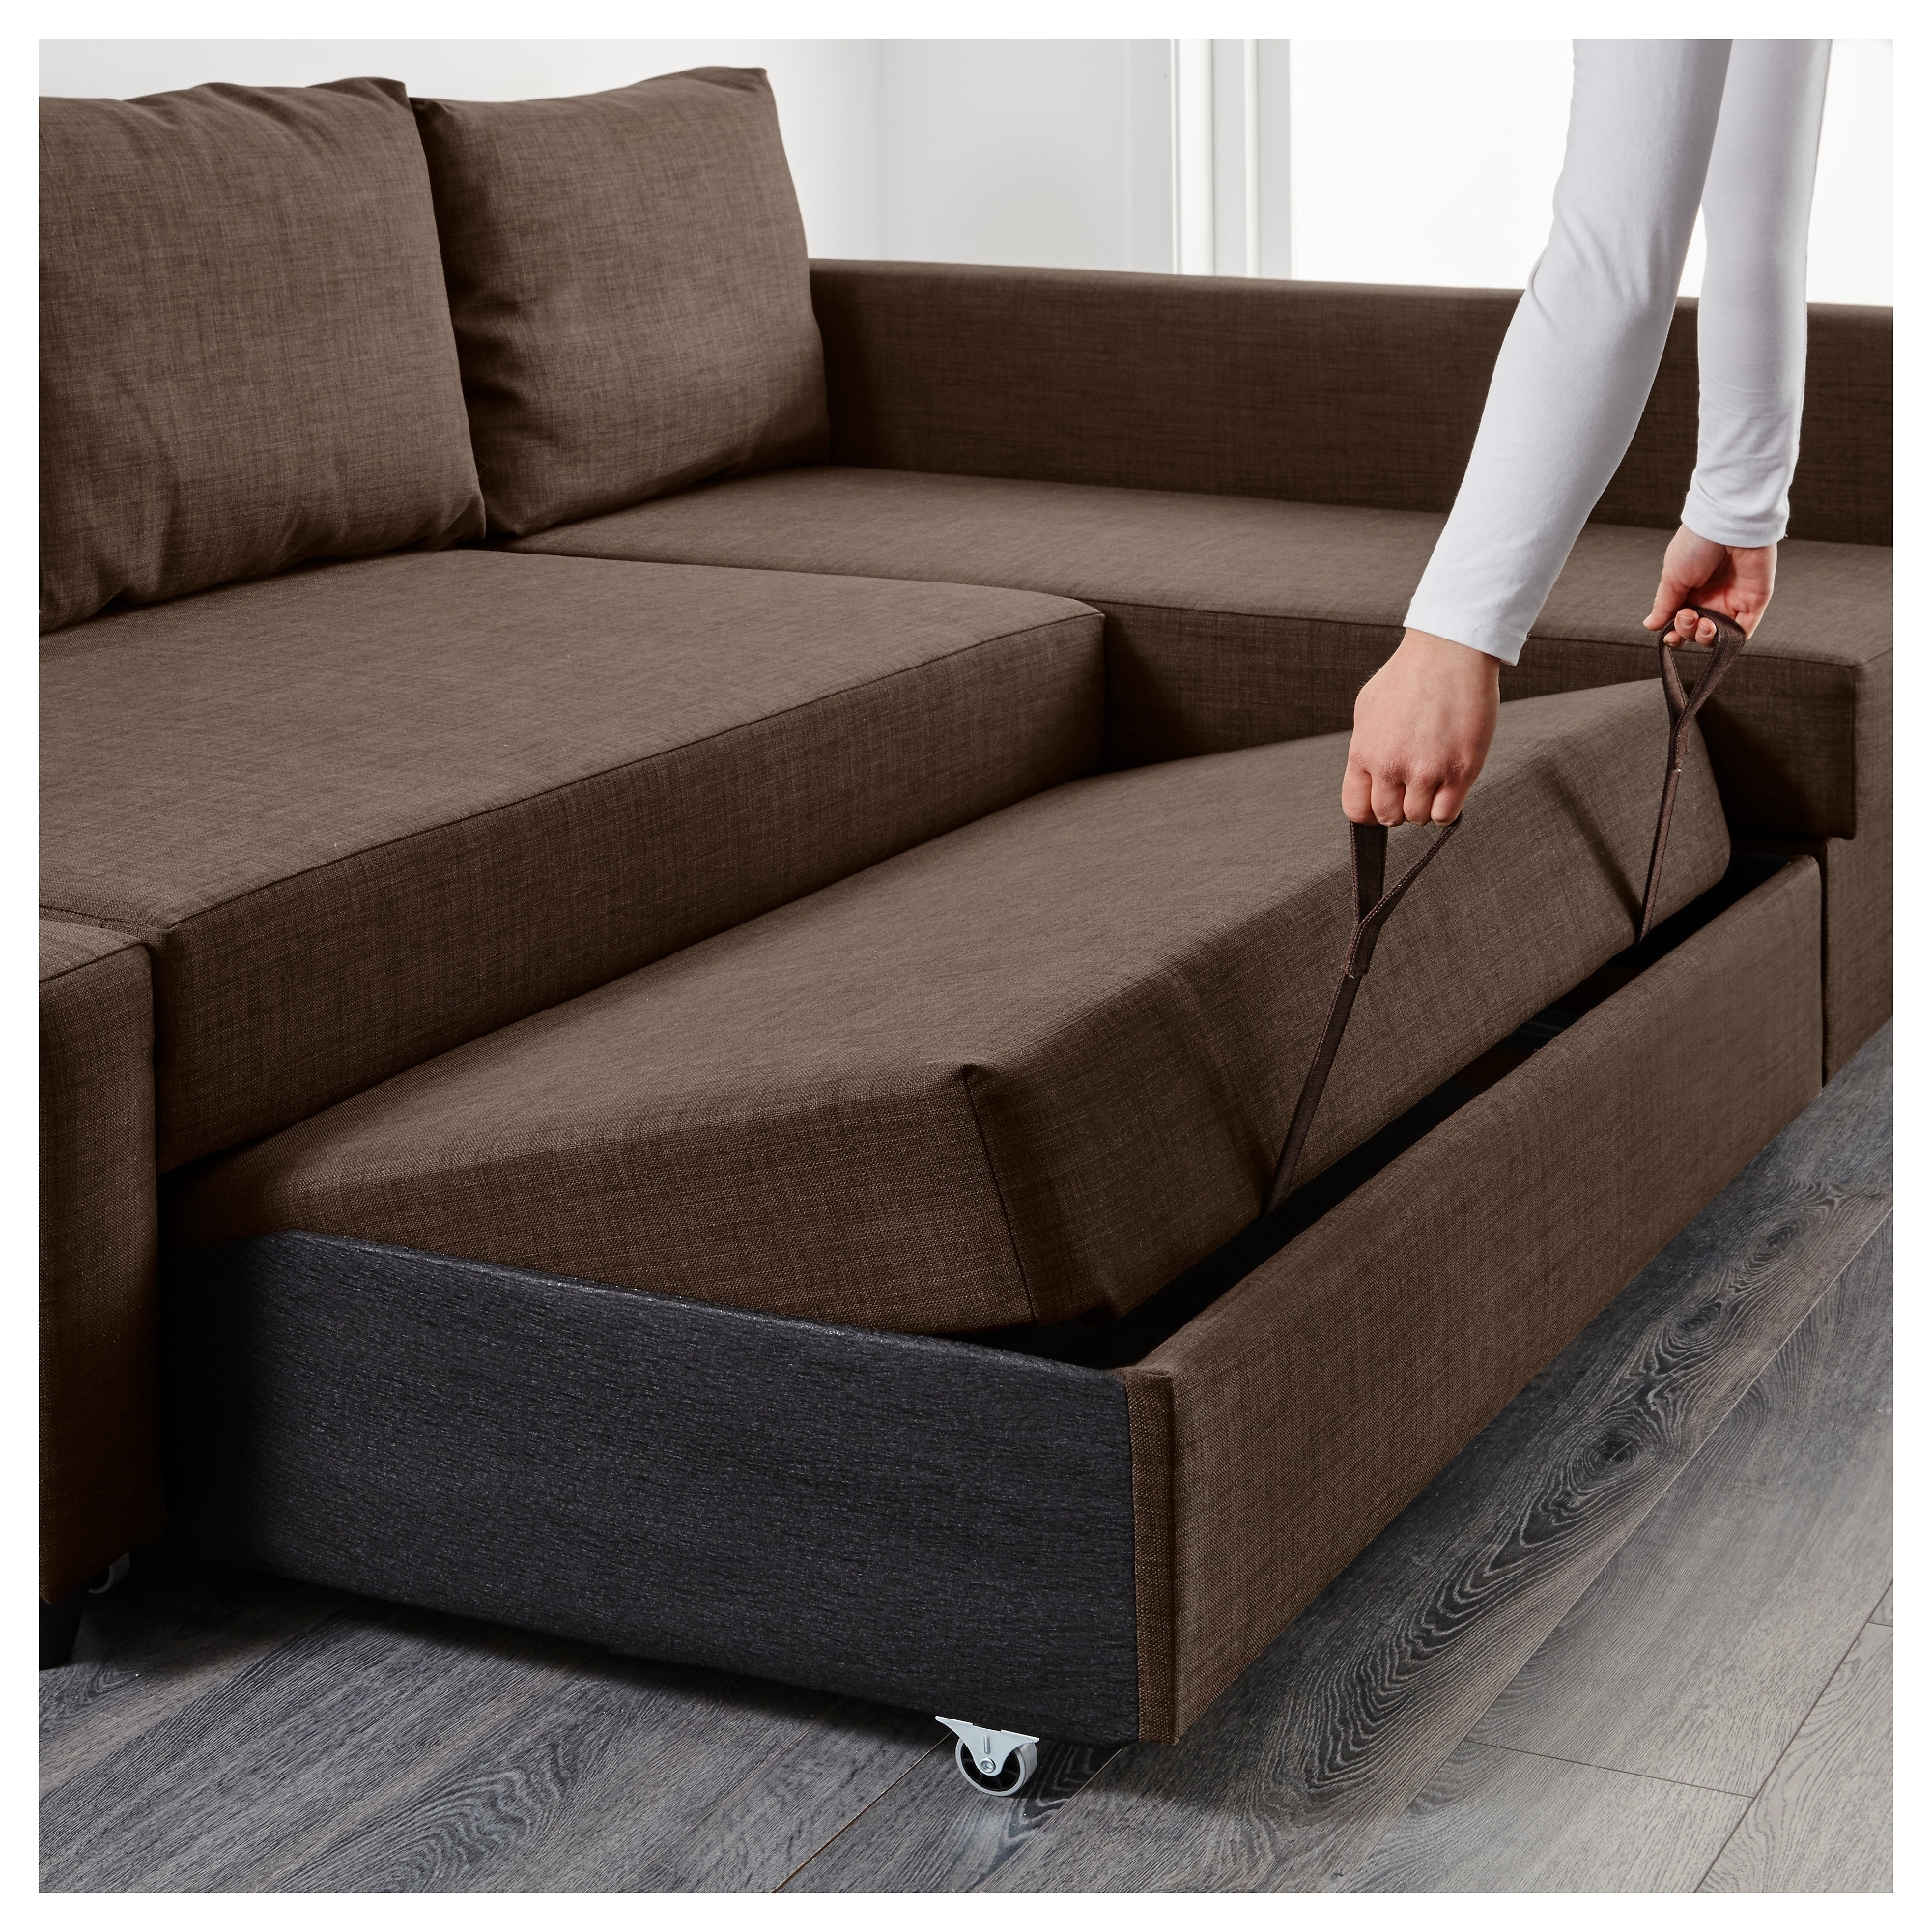 Widely Used Friheten Sleeper Sectional,3 Seat W/storage – Skiftebo Dark Gray In Sleeper Sectional Sofas (View 3 of 20)